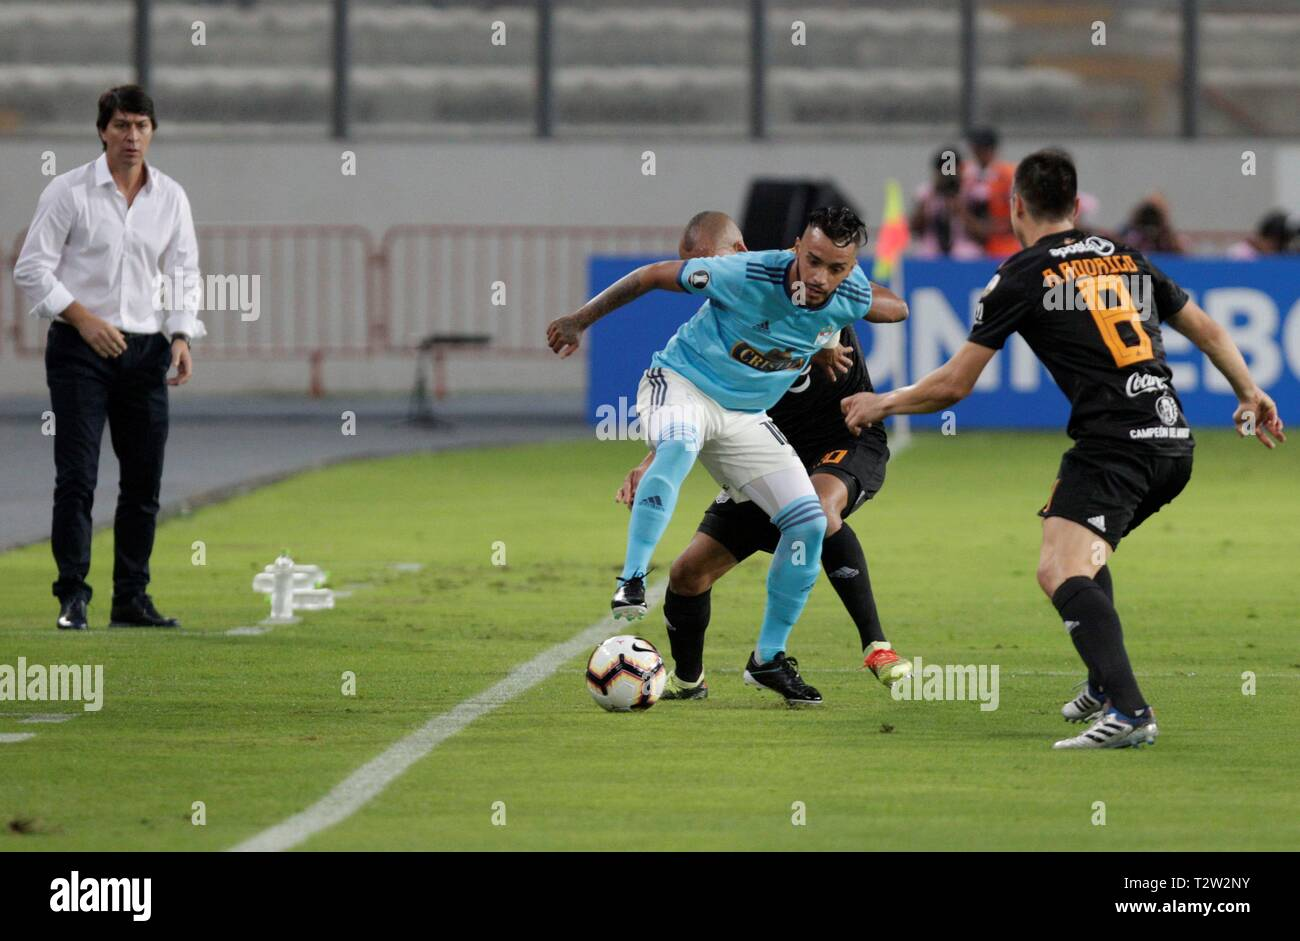 Lima, Peru. 05th Apr, 2019. Sporting Cristal's Patricio Arce (C) vies for the ball Olimpia's players during a game of the Copa Libertadores, at the National Stadium un Lima, Peru, 4 April 2019. Credit: Stringer/EFE/Alamy Live News - Stock Image